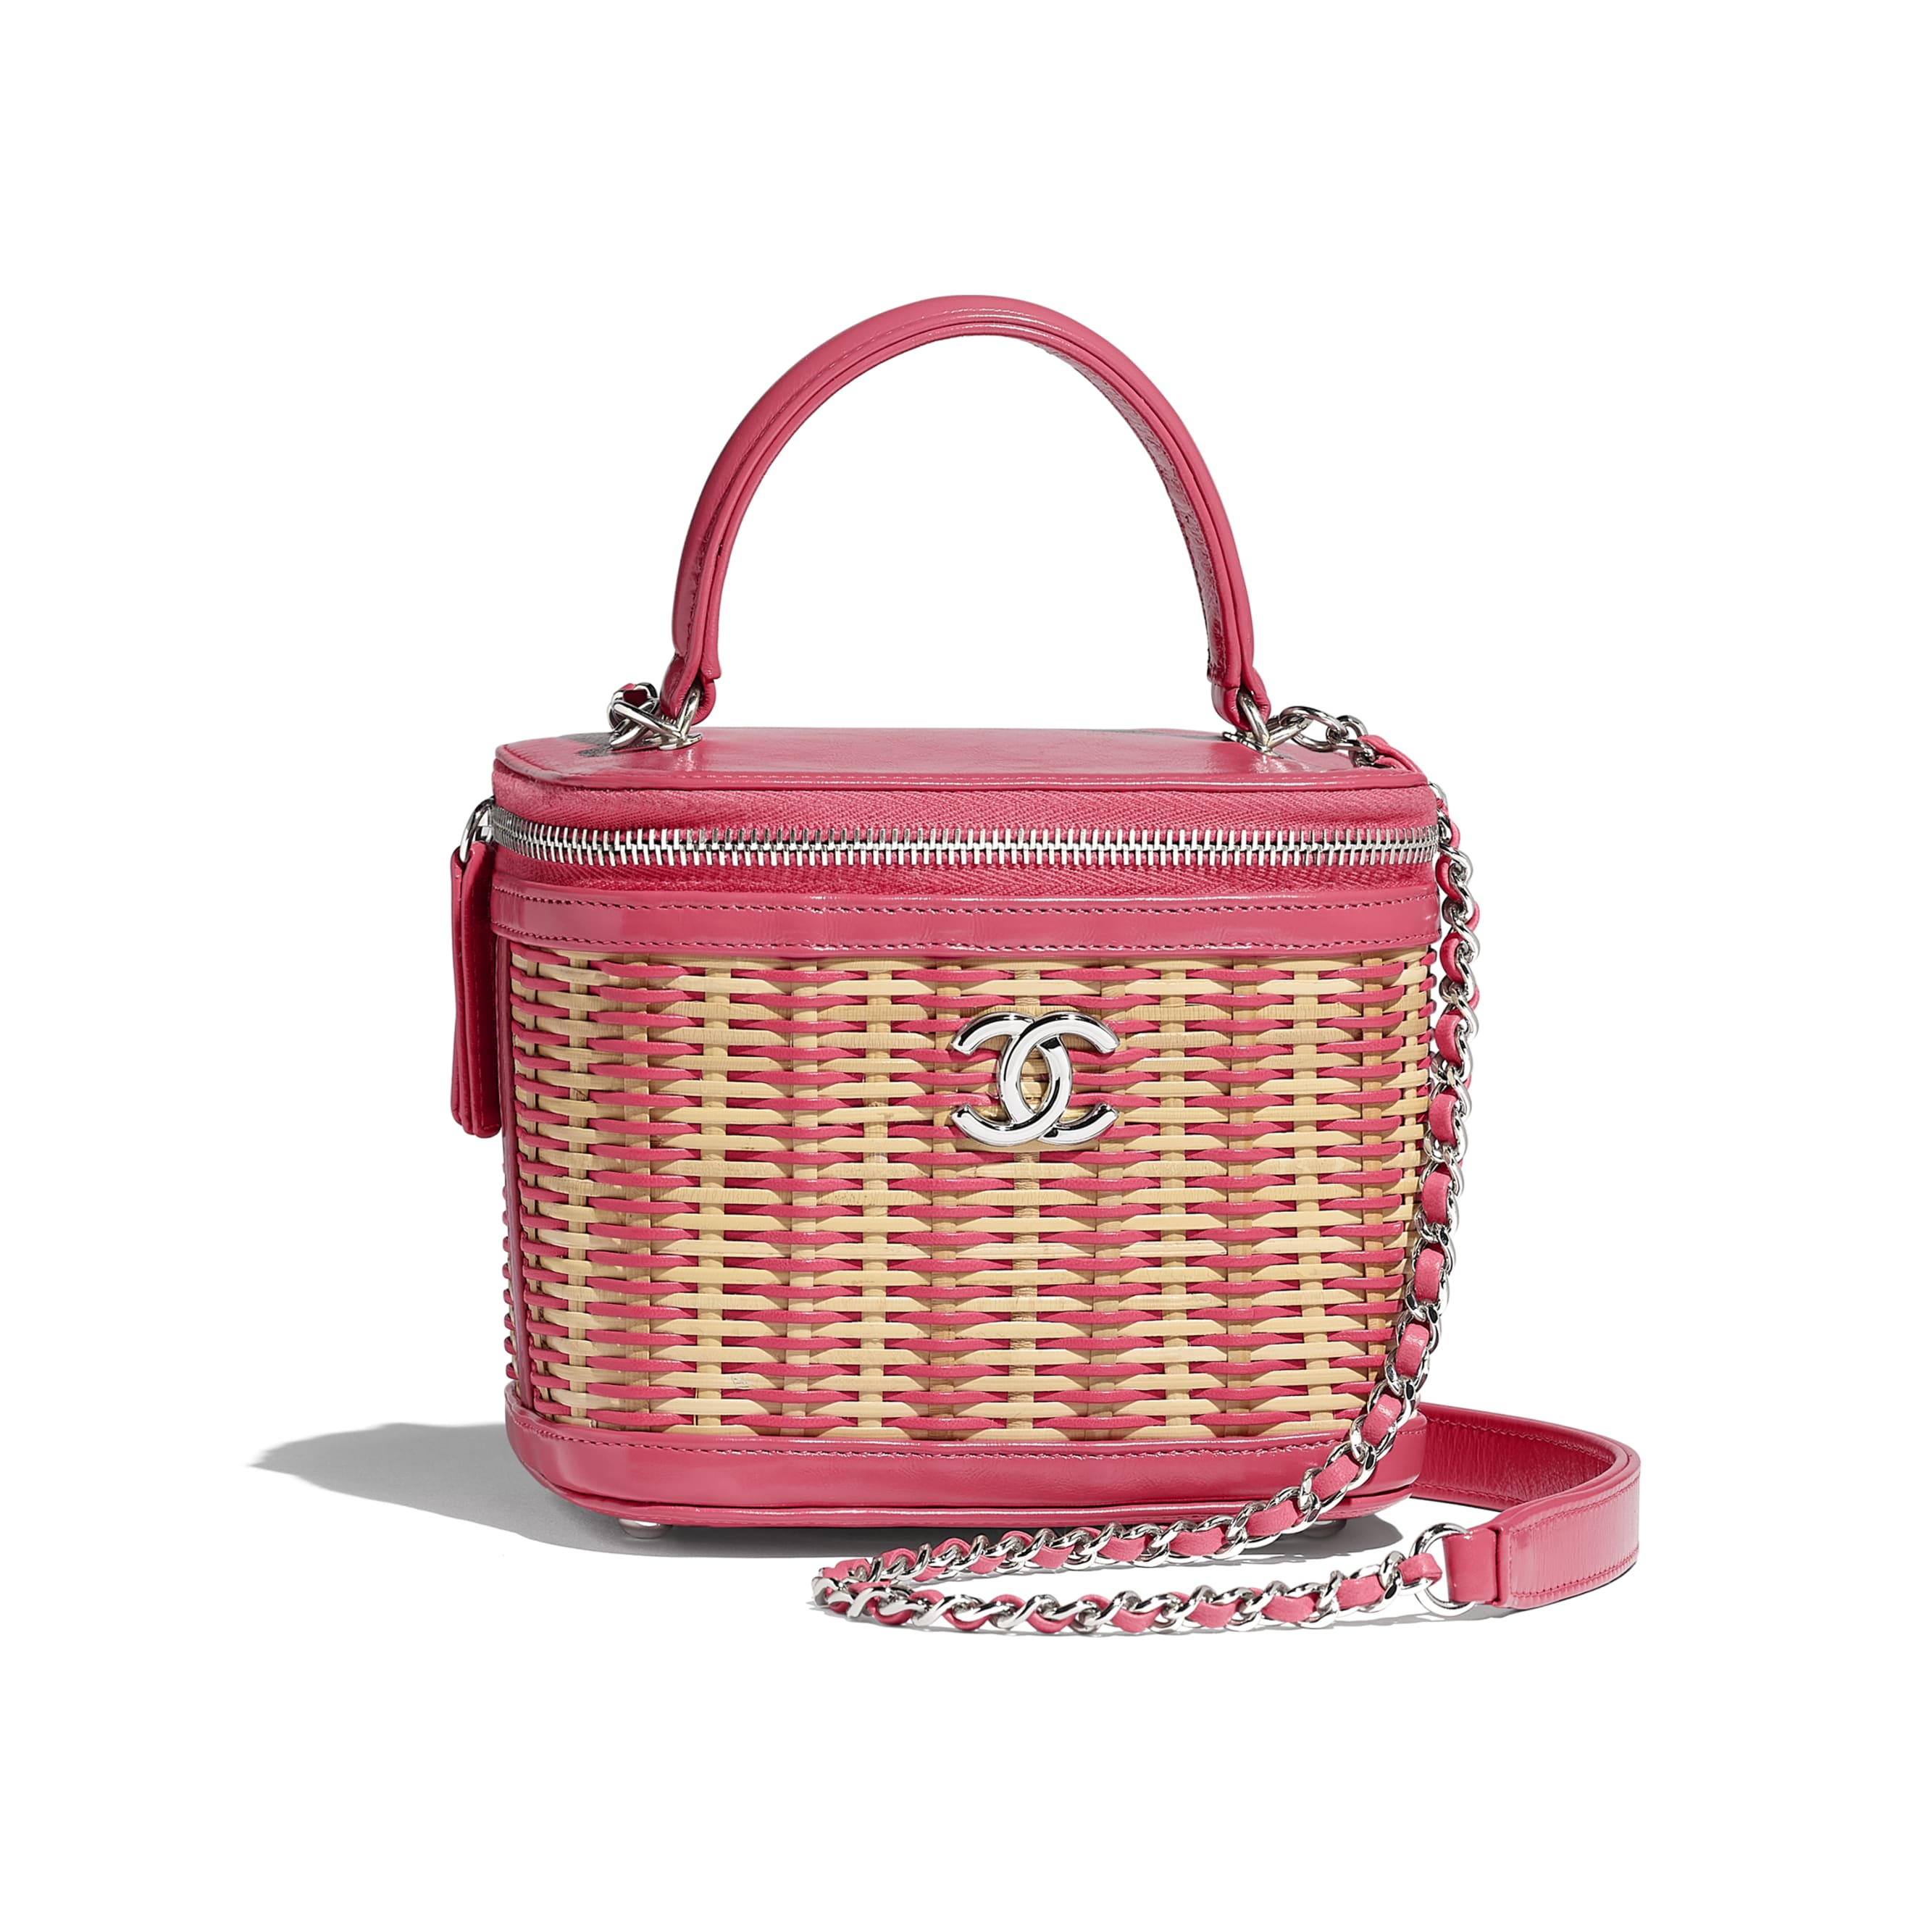 Small Vanity Case - Beige & Pink - Rattan, Calfskin & Silver-Tone Metal - Default view - see standard sized version